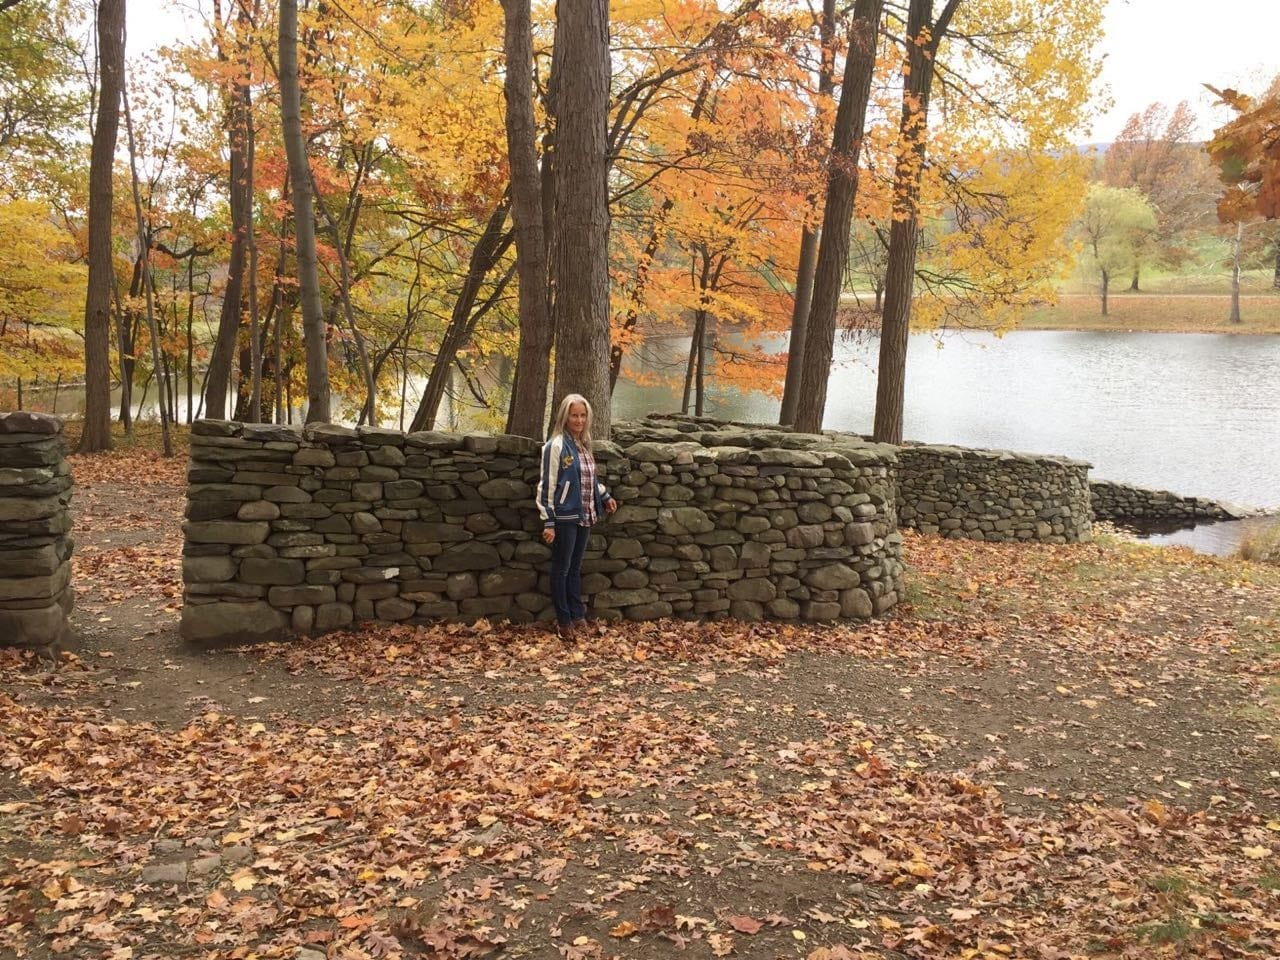 An Andy Goldsworthy sculpture in New York